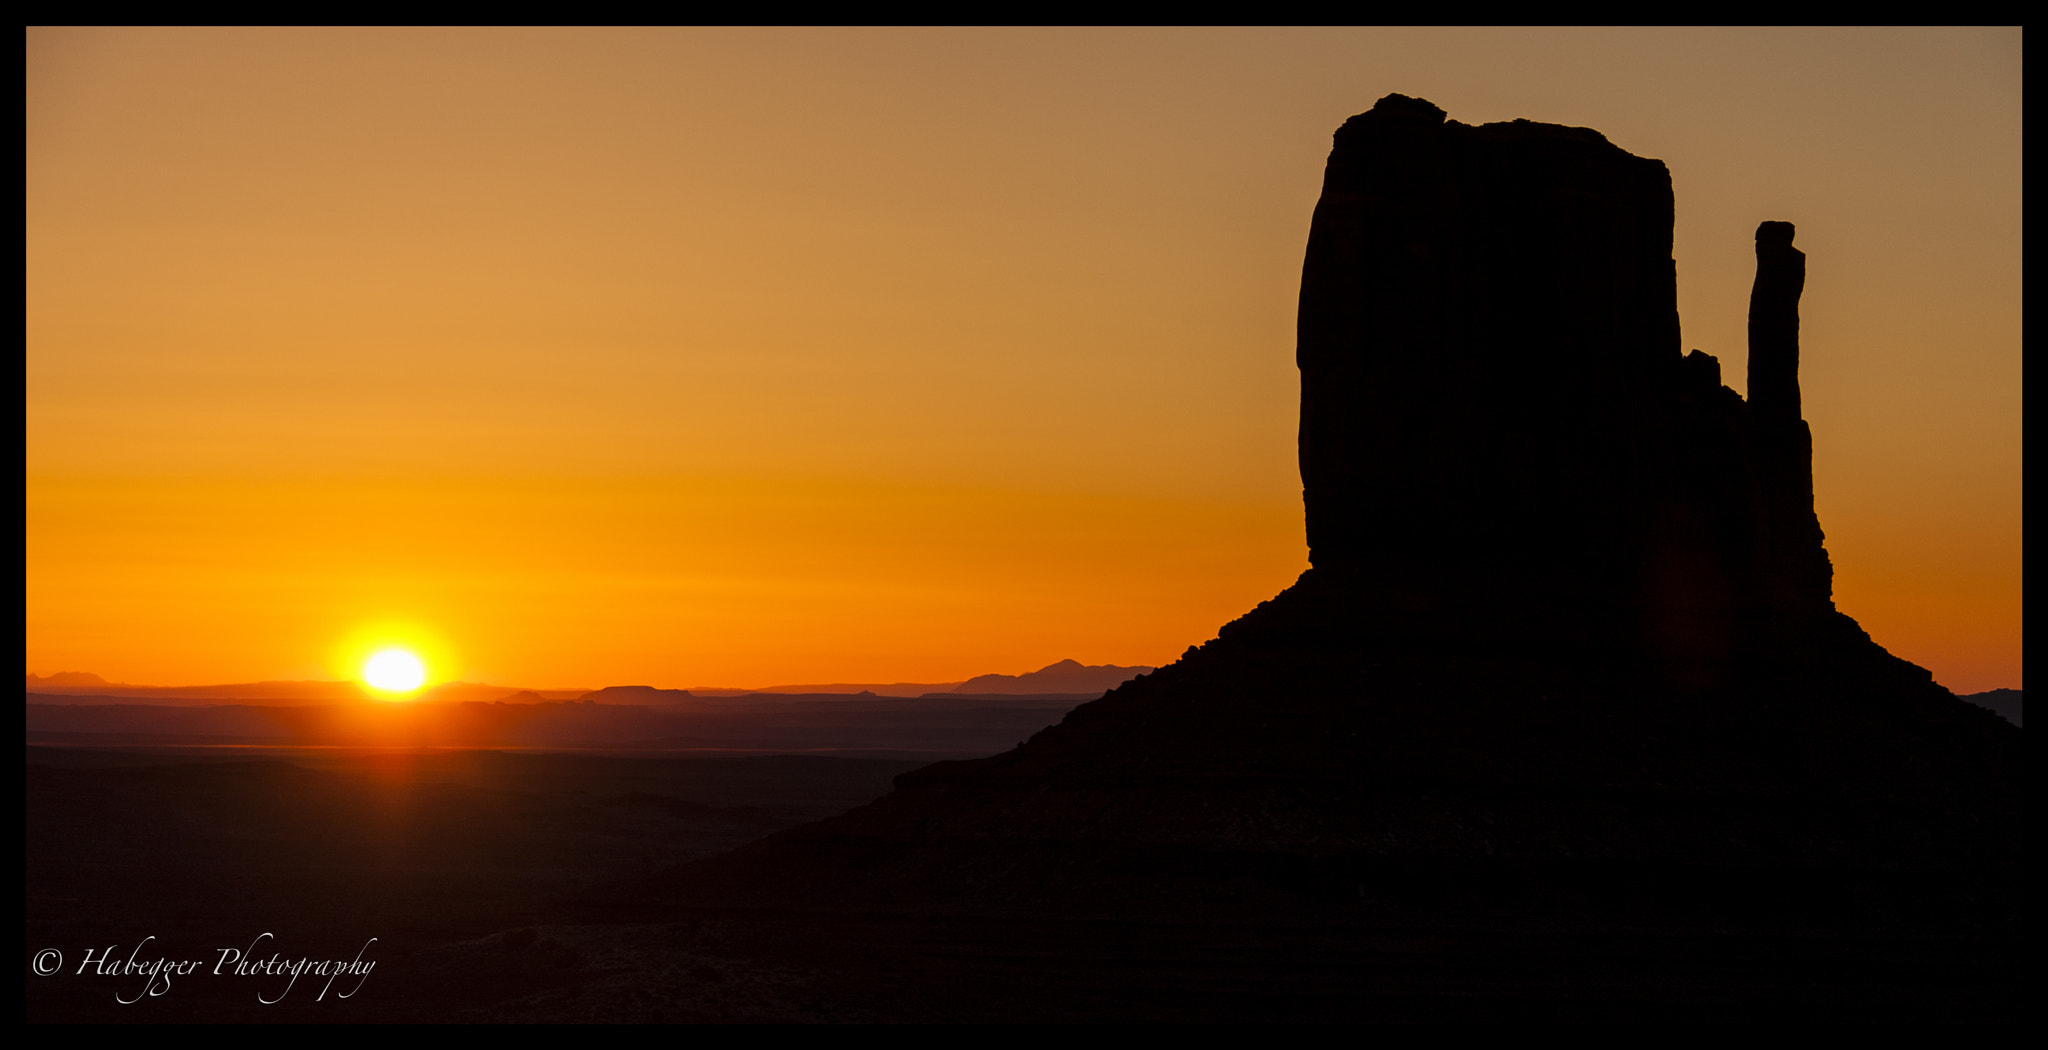 Photograph Monument Sunset by Chris Habegger on 500px